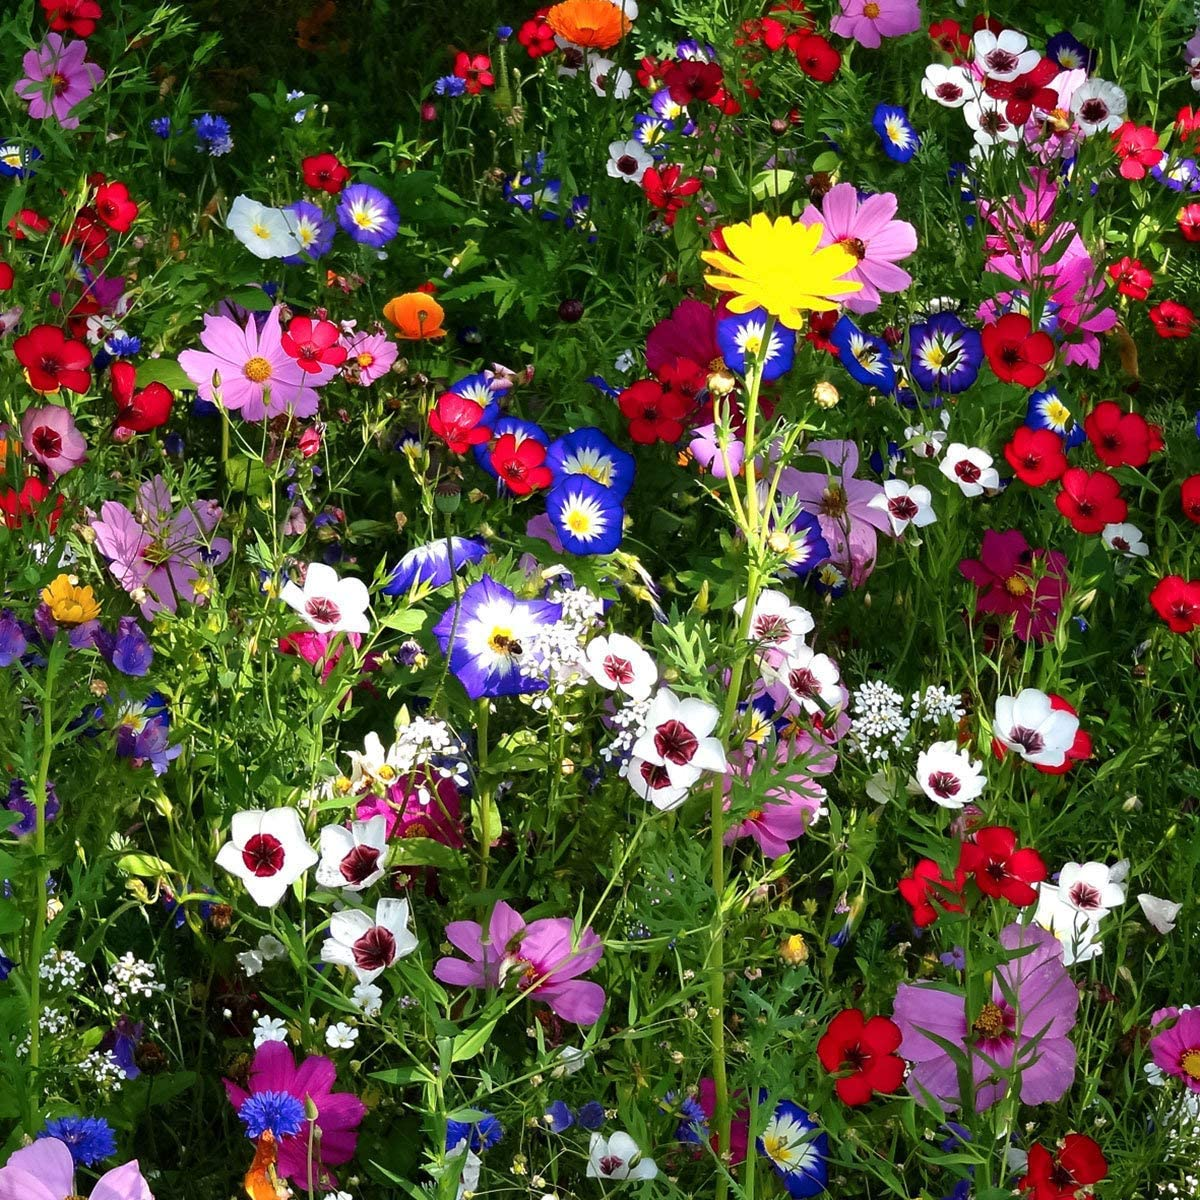 Exotic Hardy Perennial Flower Seeds Meadow bee Flower Seeds Rare beeFriendly Wild Flower for 0,5 qm